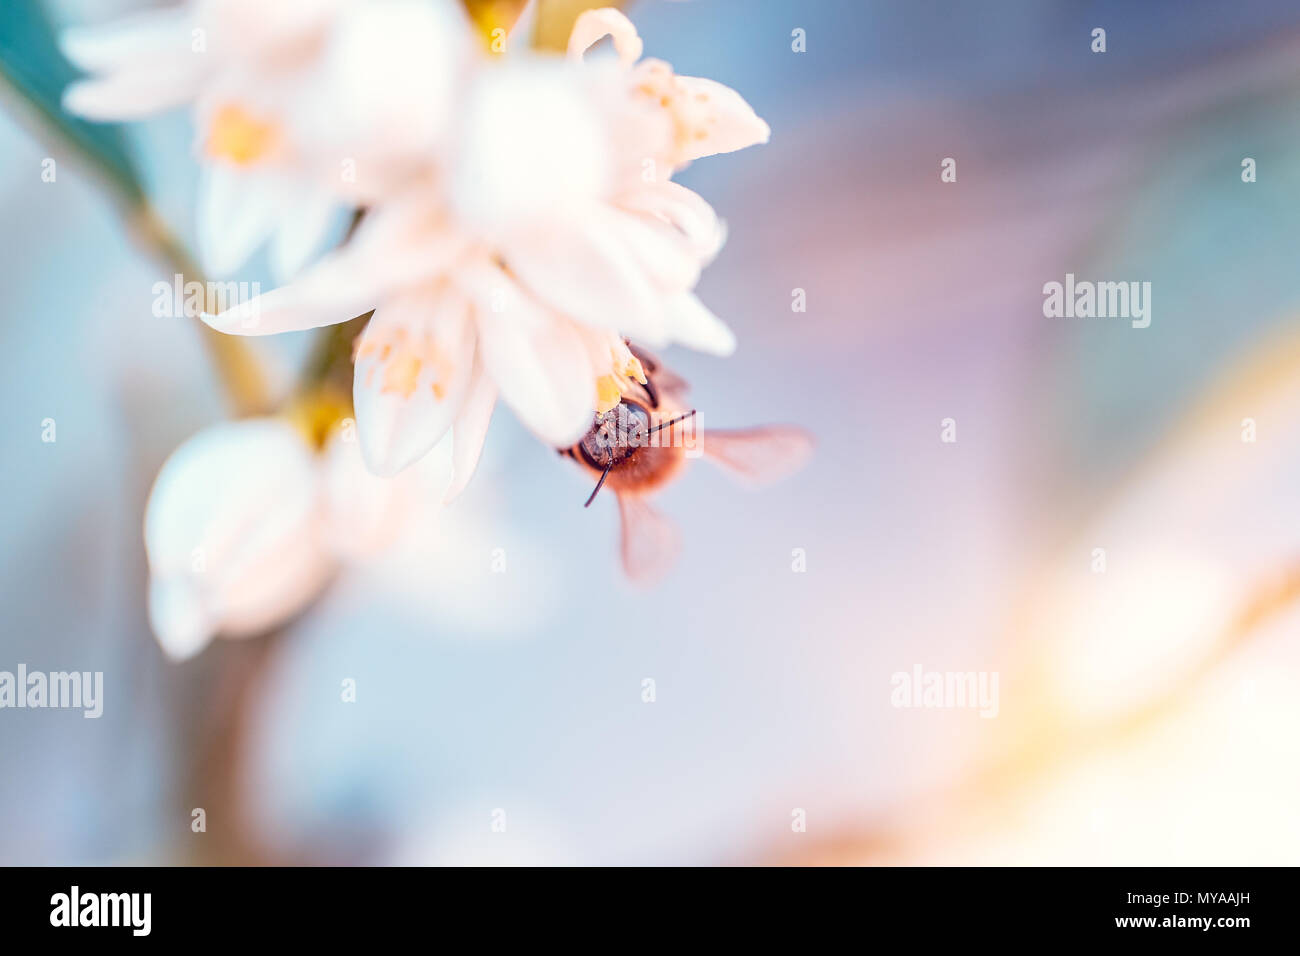 Little bee pollinates mandarin flowers, cute little insect sitting on white gentle flowers, abstract natural background, beauty of spring nature - Stock Image